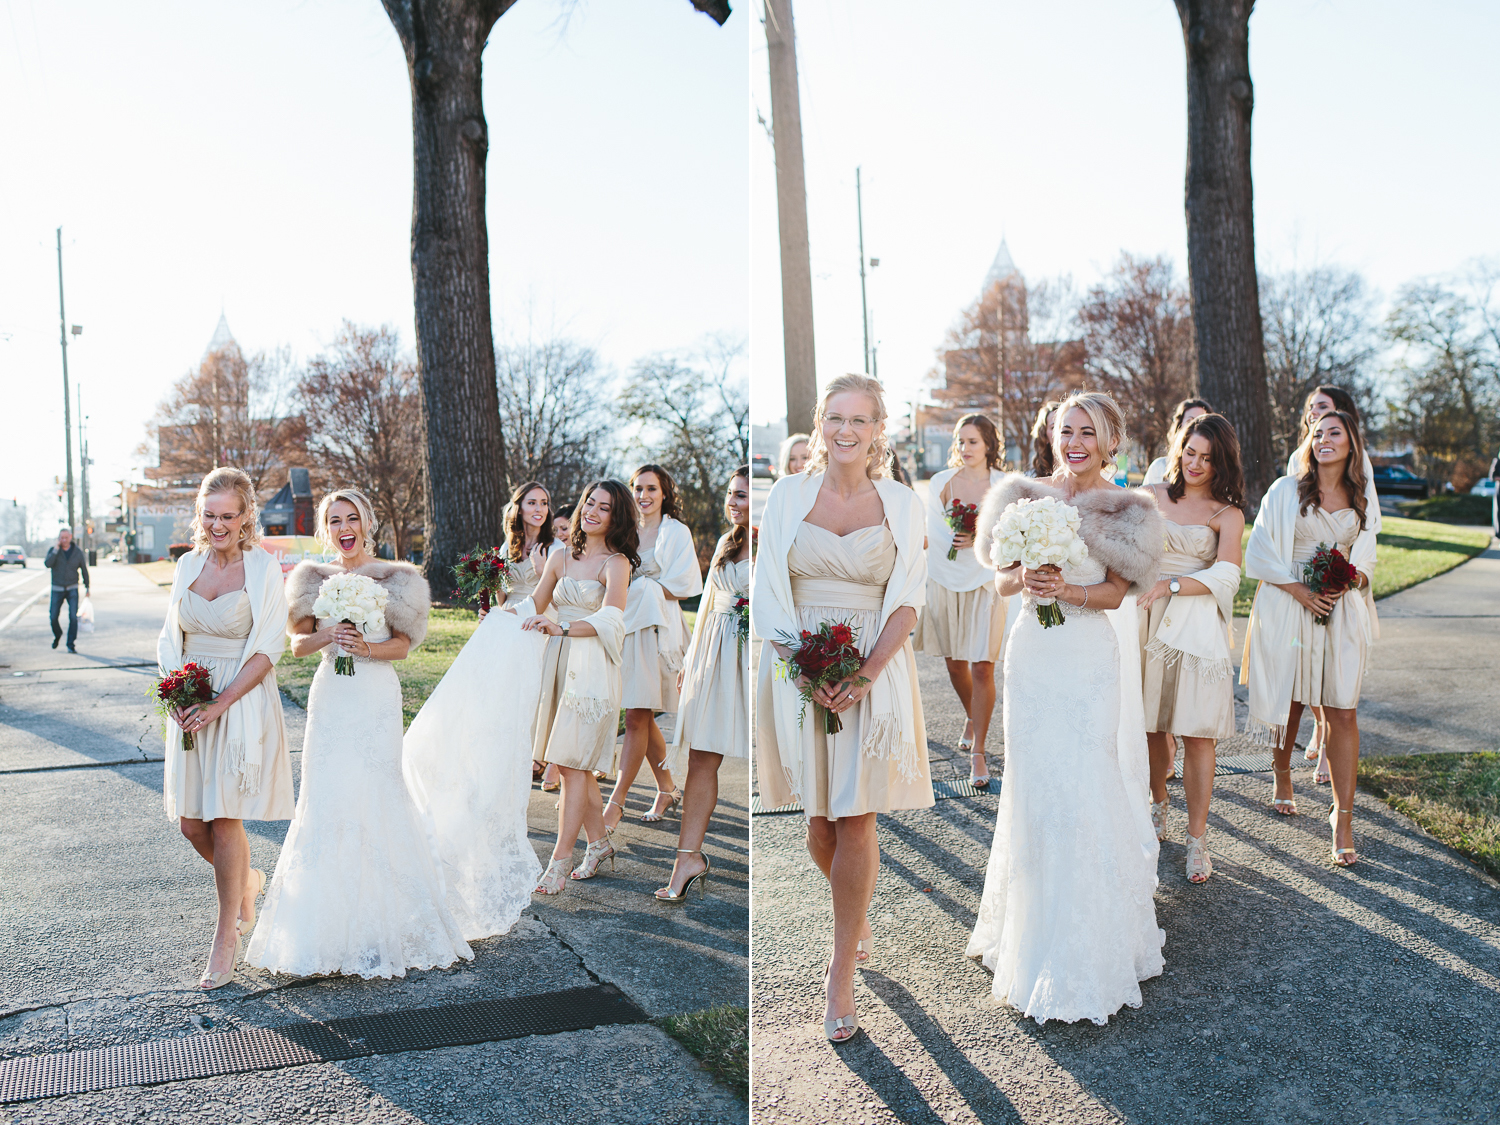 bride and bridesmaids walking down the street together